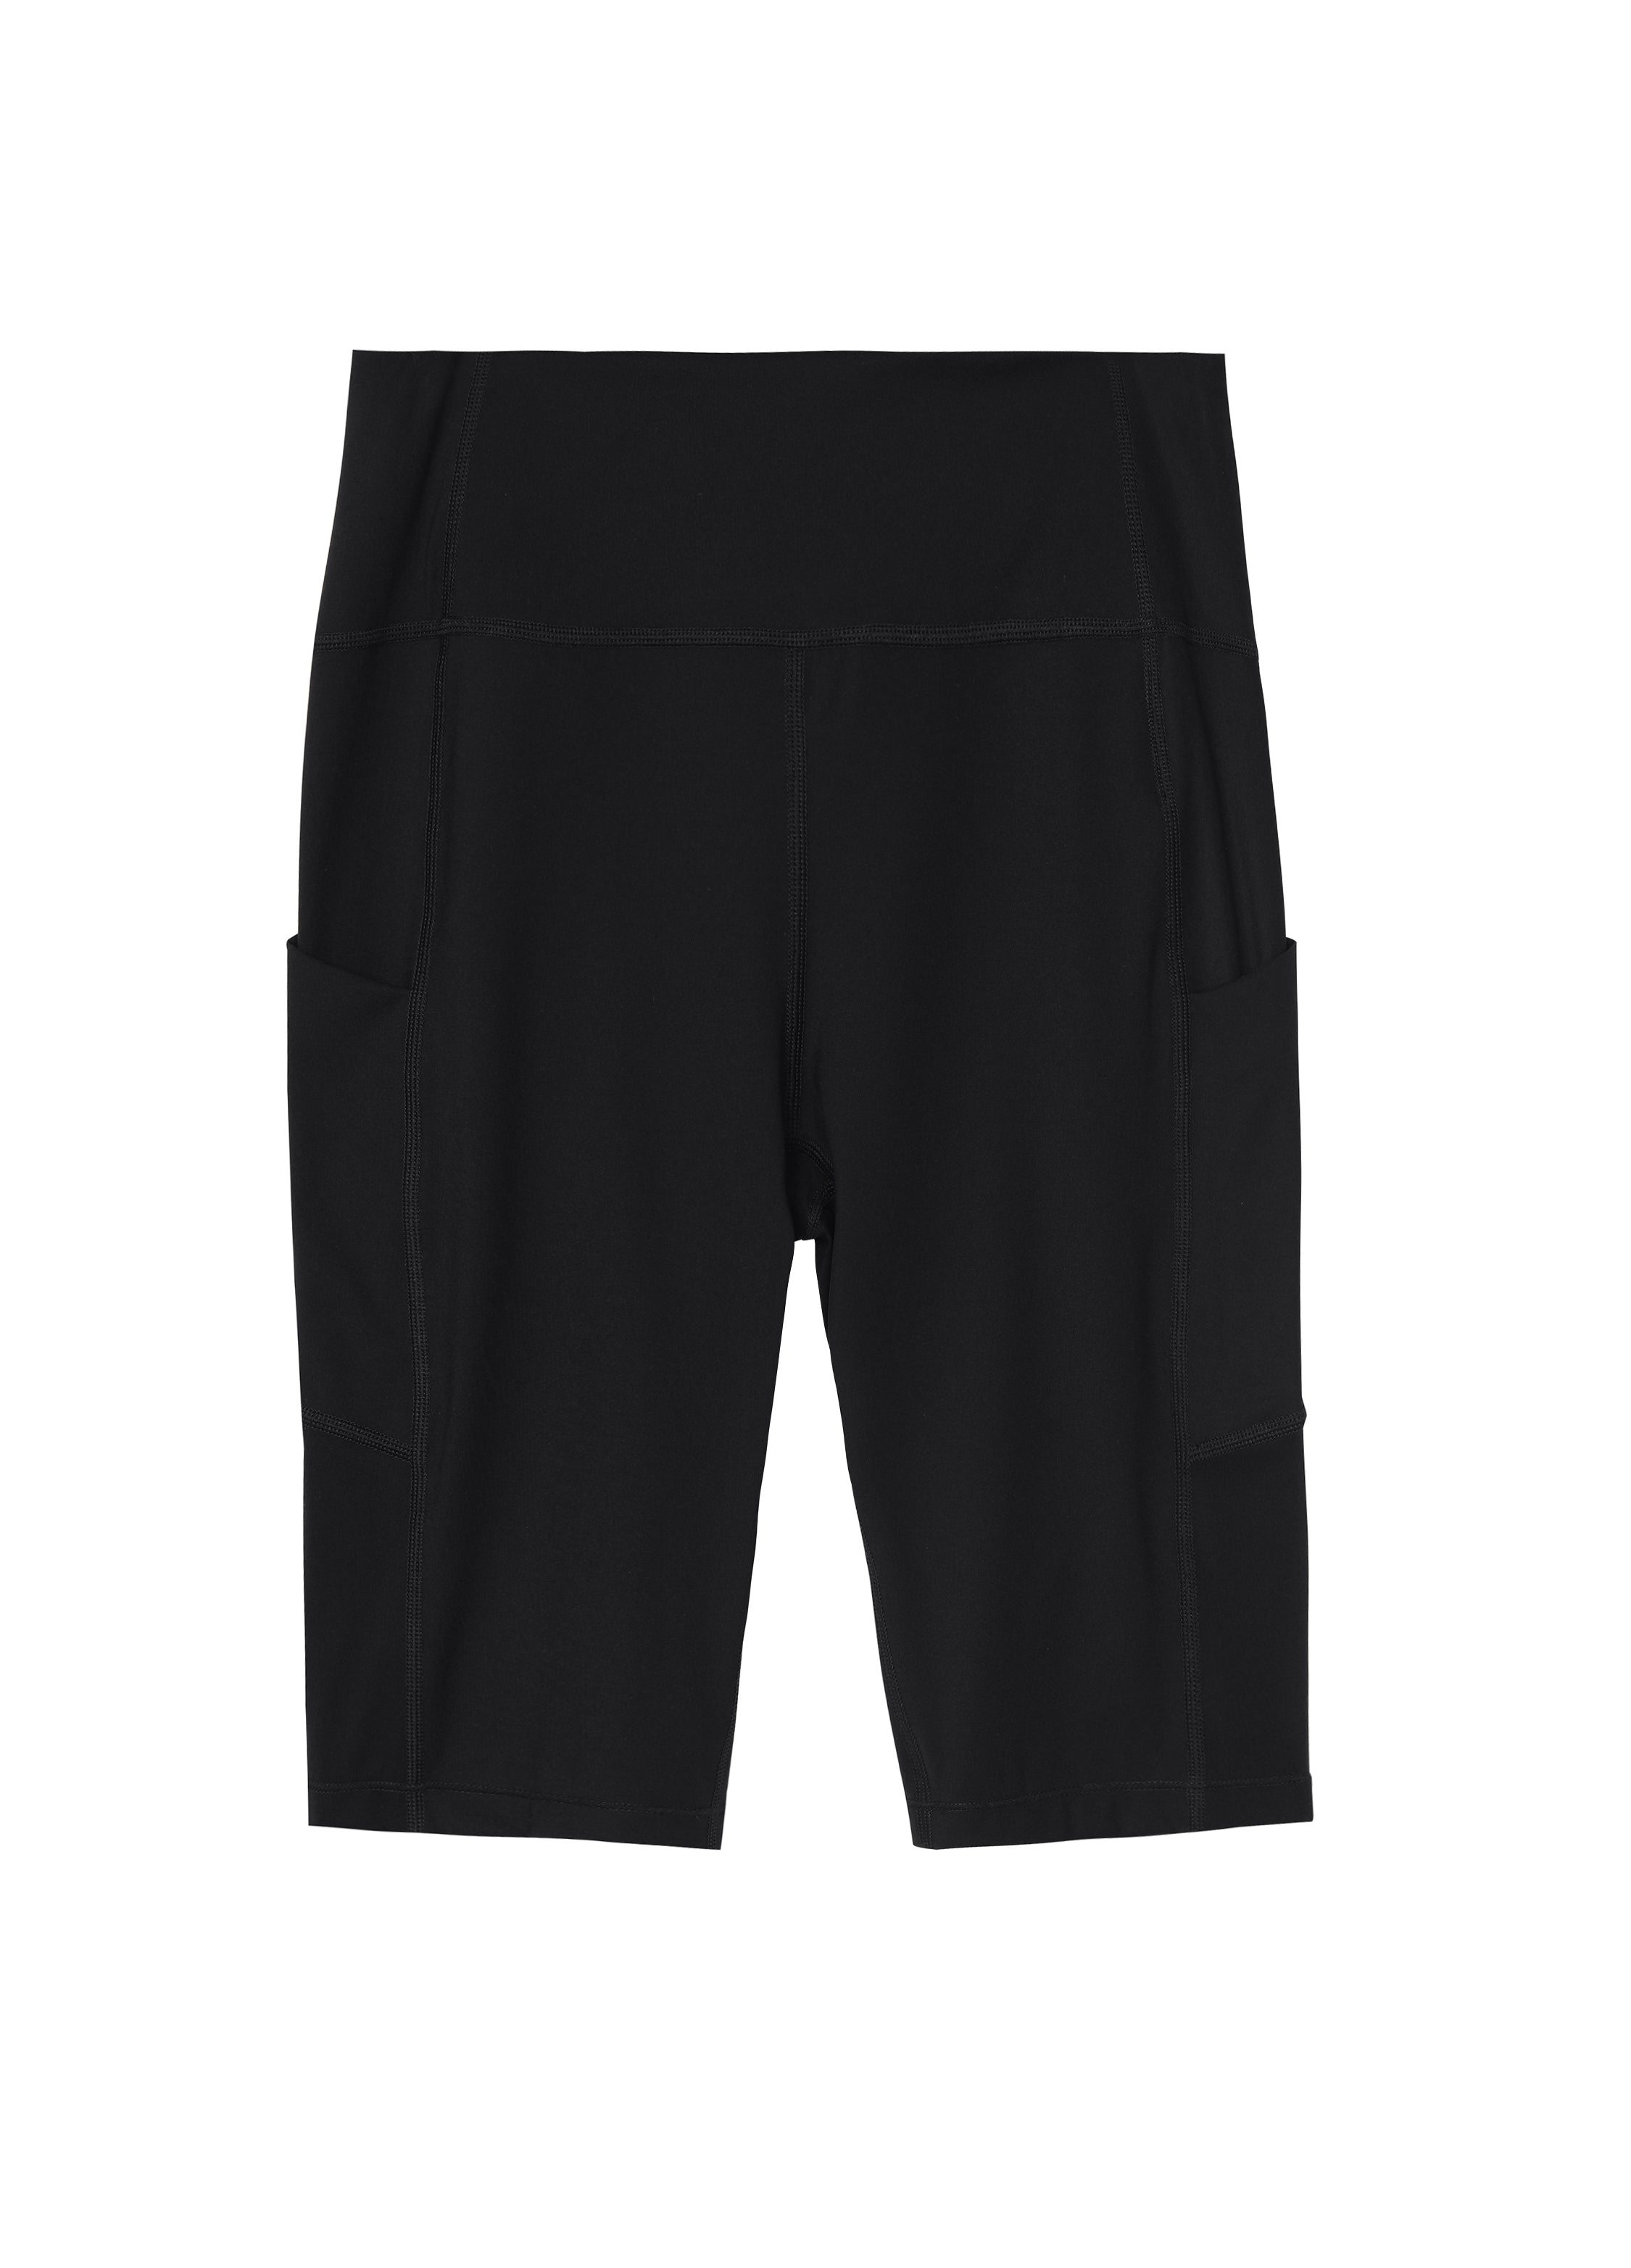 JNBY Active Short Leggings